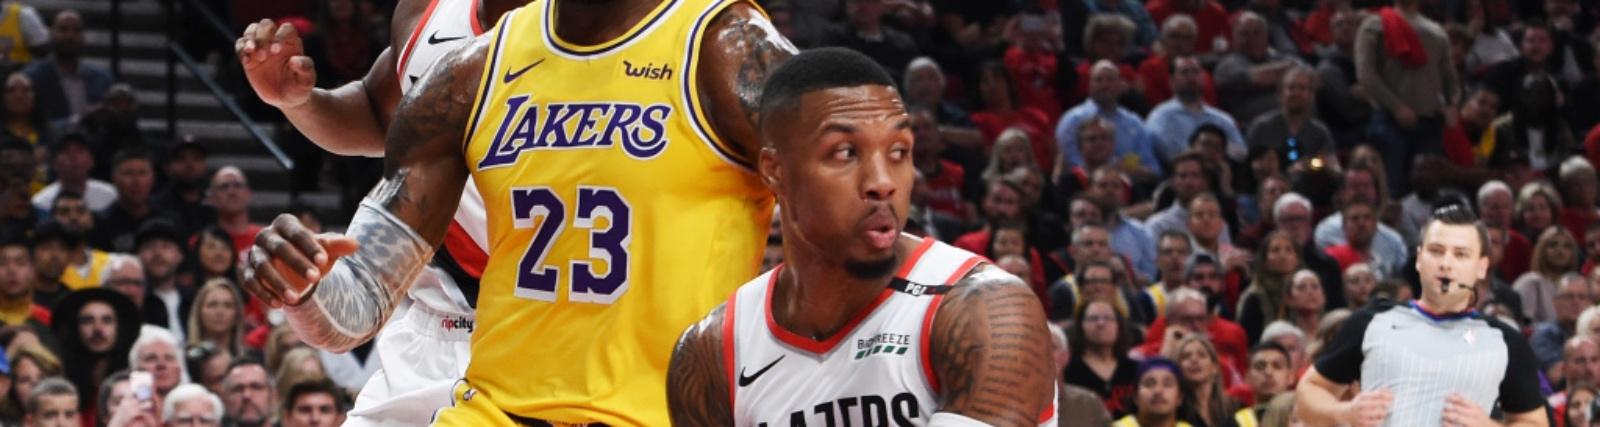 New Conspiracy Claims NBA Teams Are Purposely Throwing Games To Get A Blazers-Lakers Playoff Series